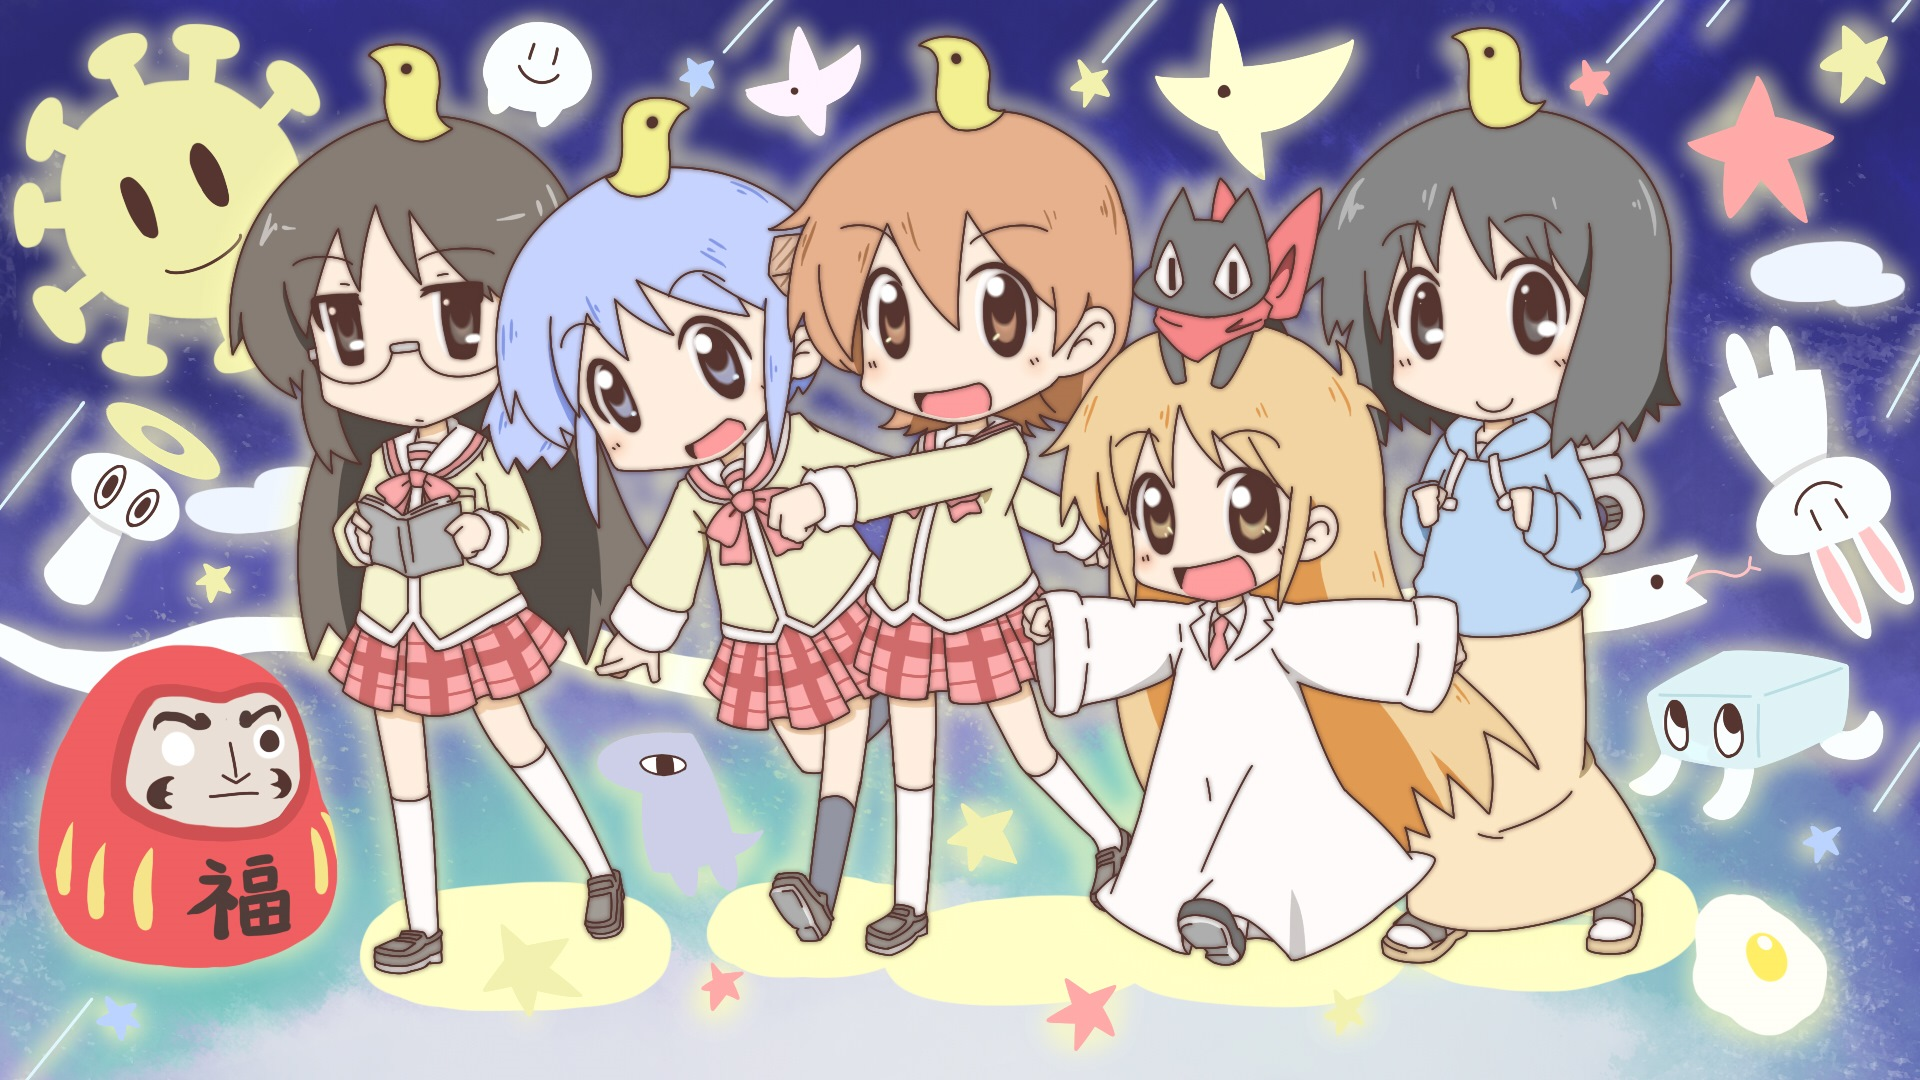 Konachan.com - 155614 aioi_yuuko animal black_eyes blue_eyes blue_hair book brown_eyes brown_hair bunny cat chibi glasses long_hair nichijou seifuku skirt stars twintails1